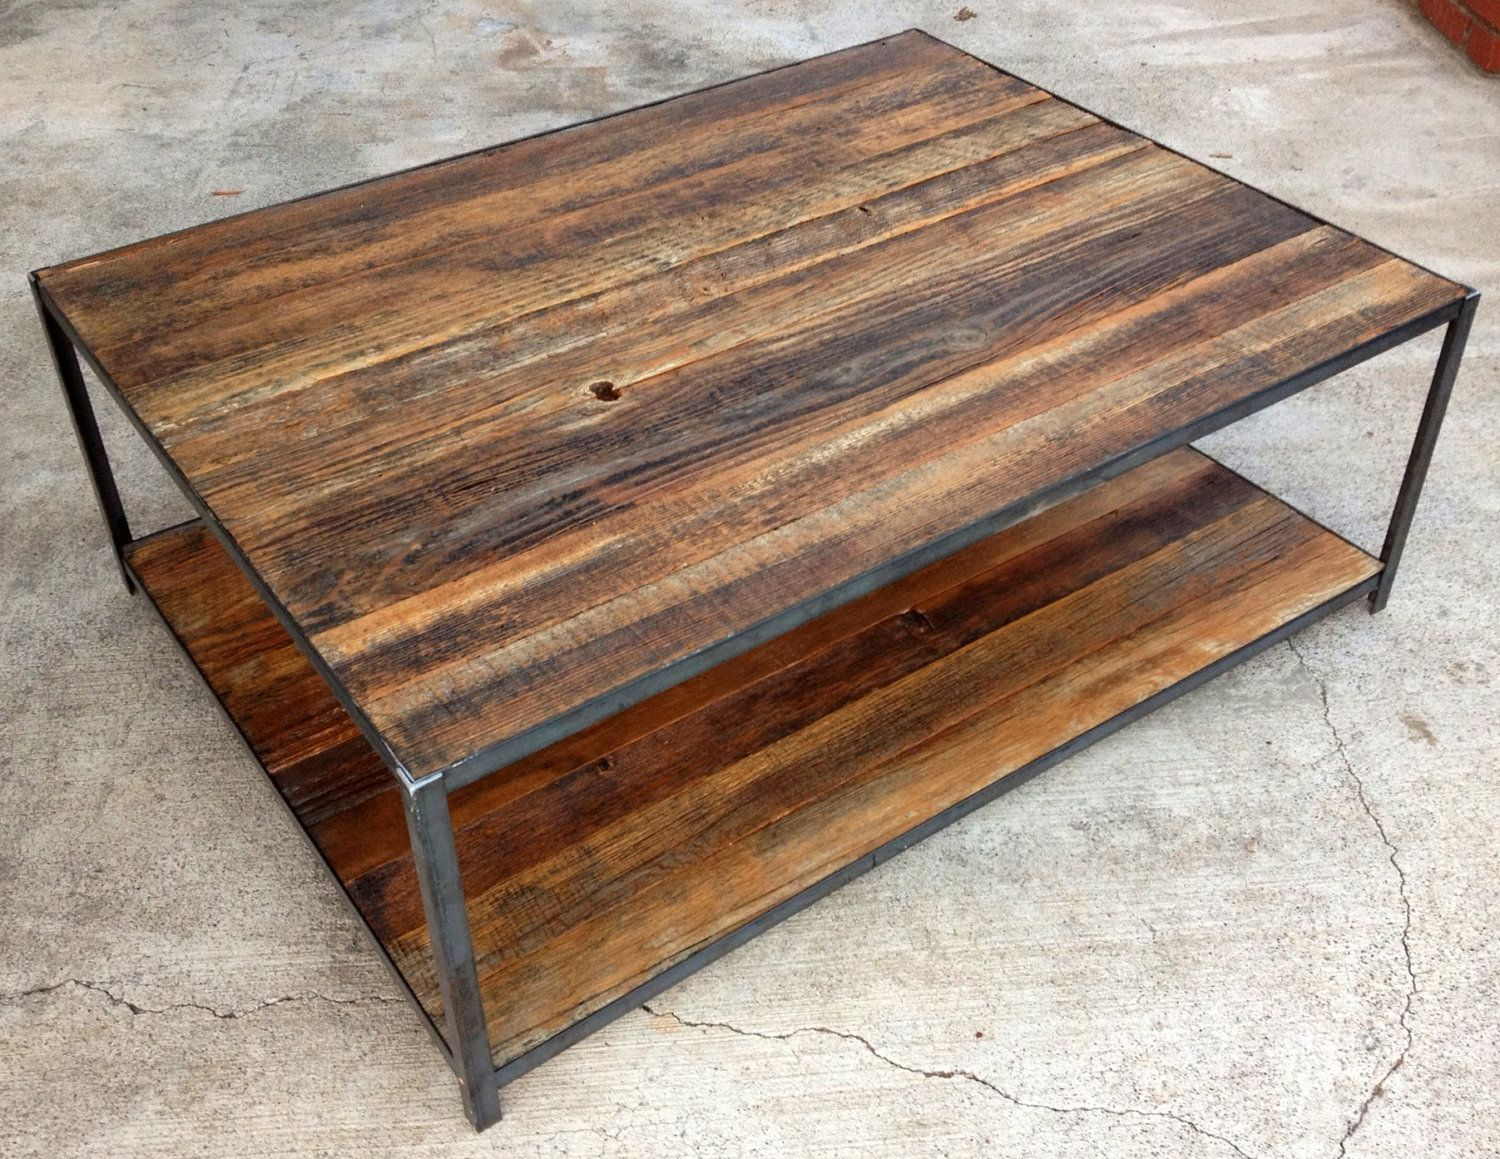 Reclaimed wood and angle iron coffee table 40000 via for Reclaimed teak wood coffee table